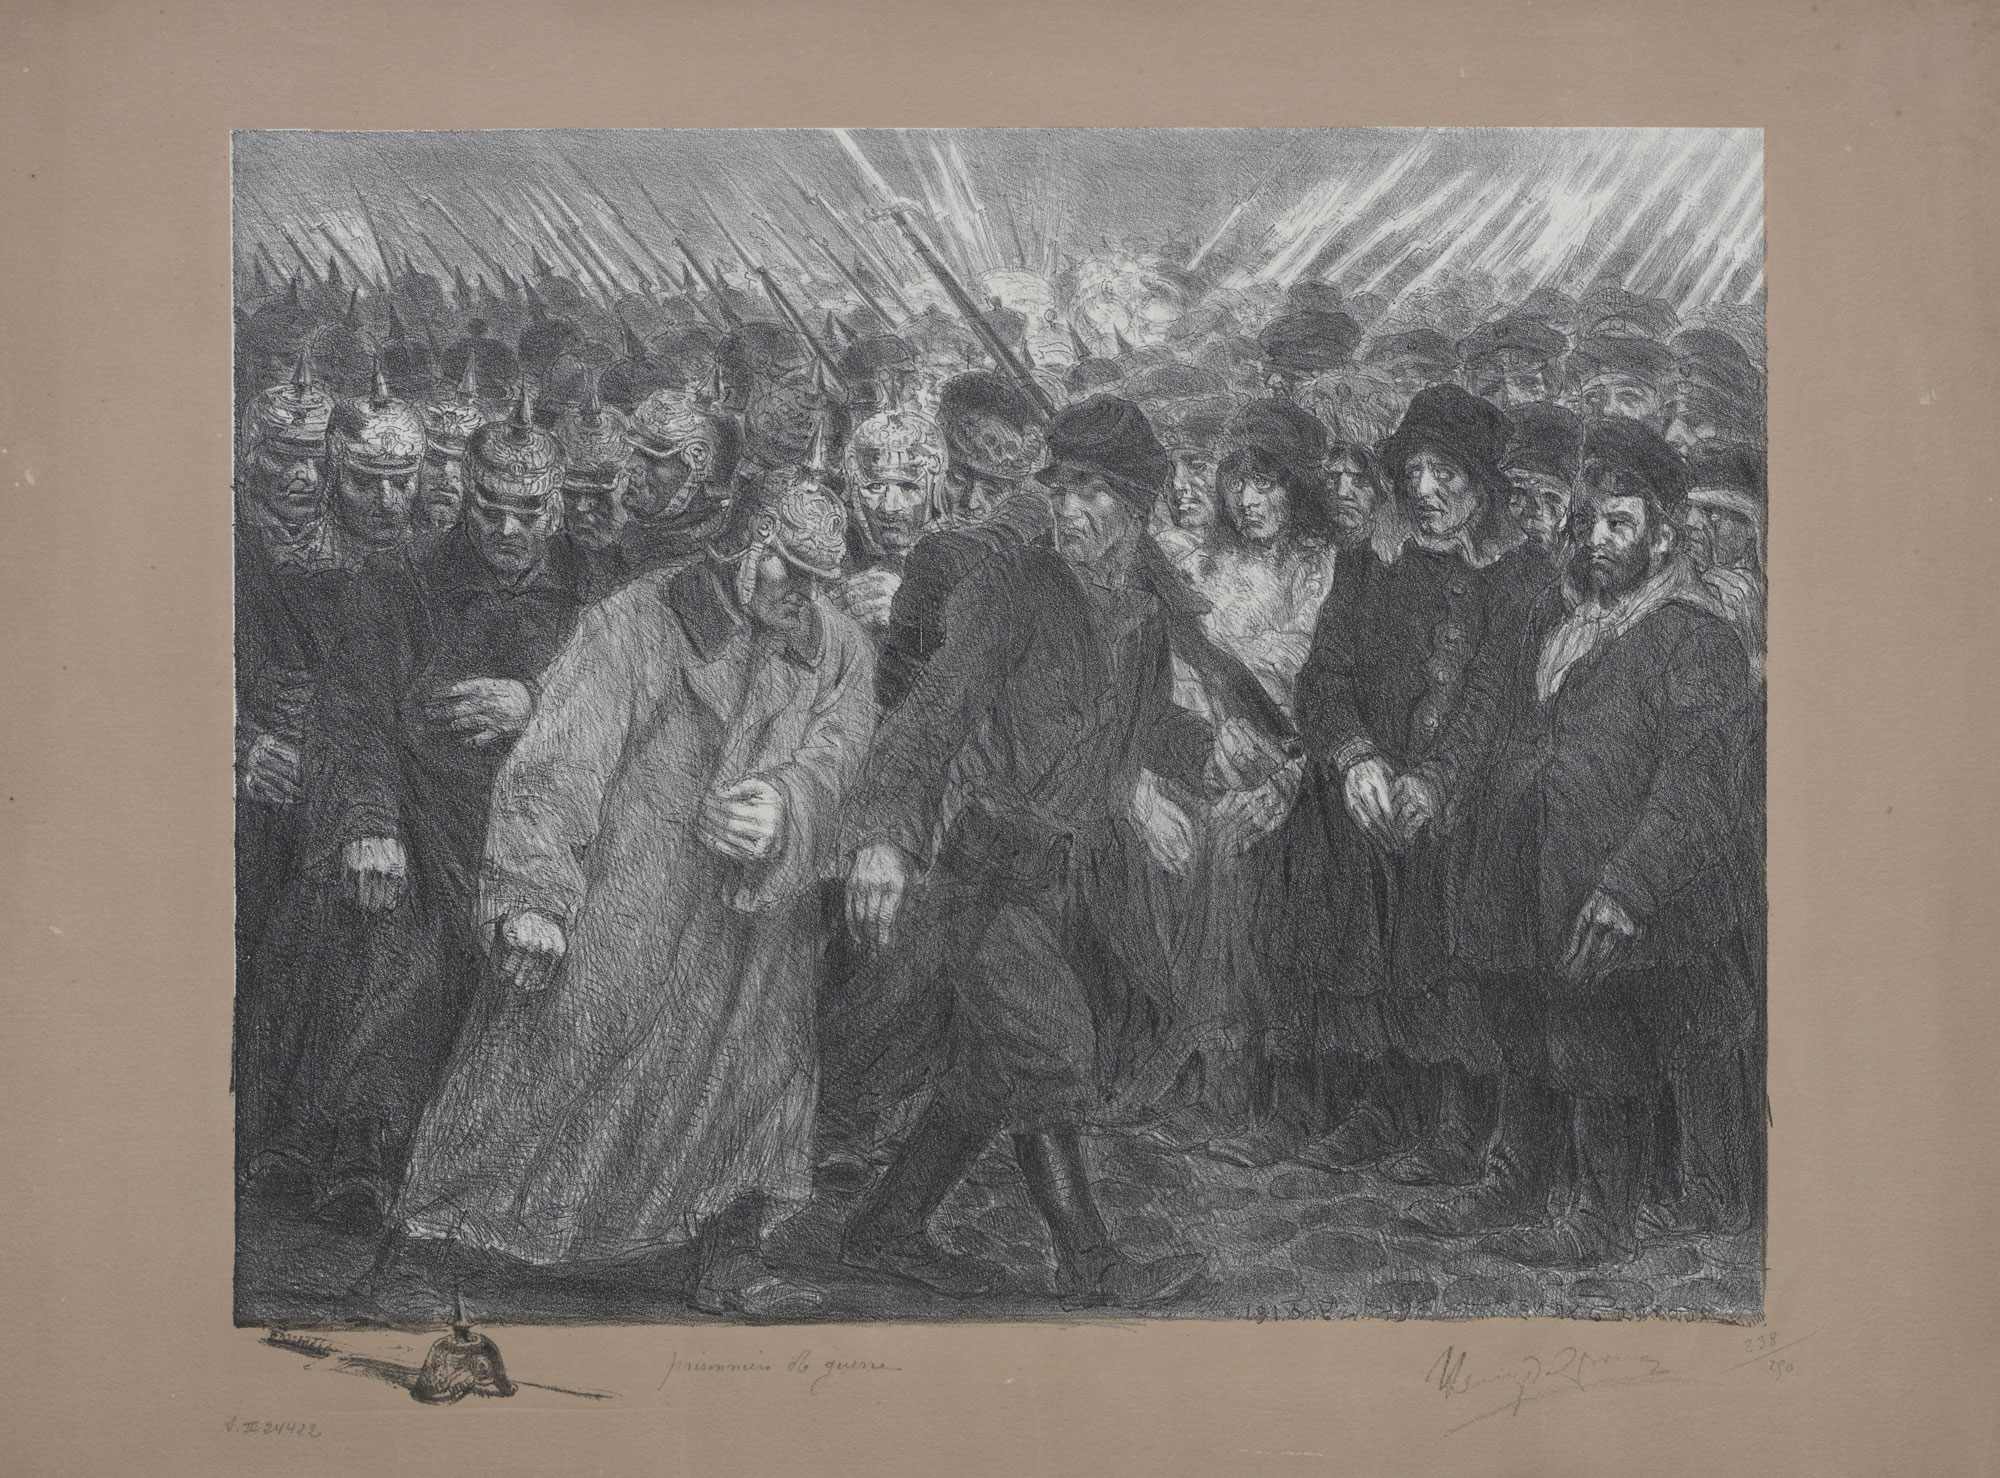 Lithograph showing prisoners of war, by Belgian symbolist painter and sculptor Henry de Groux (1886-1930).